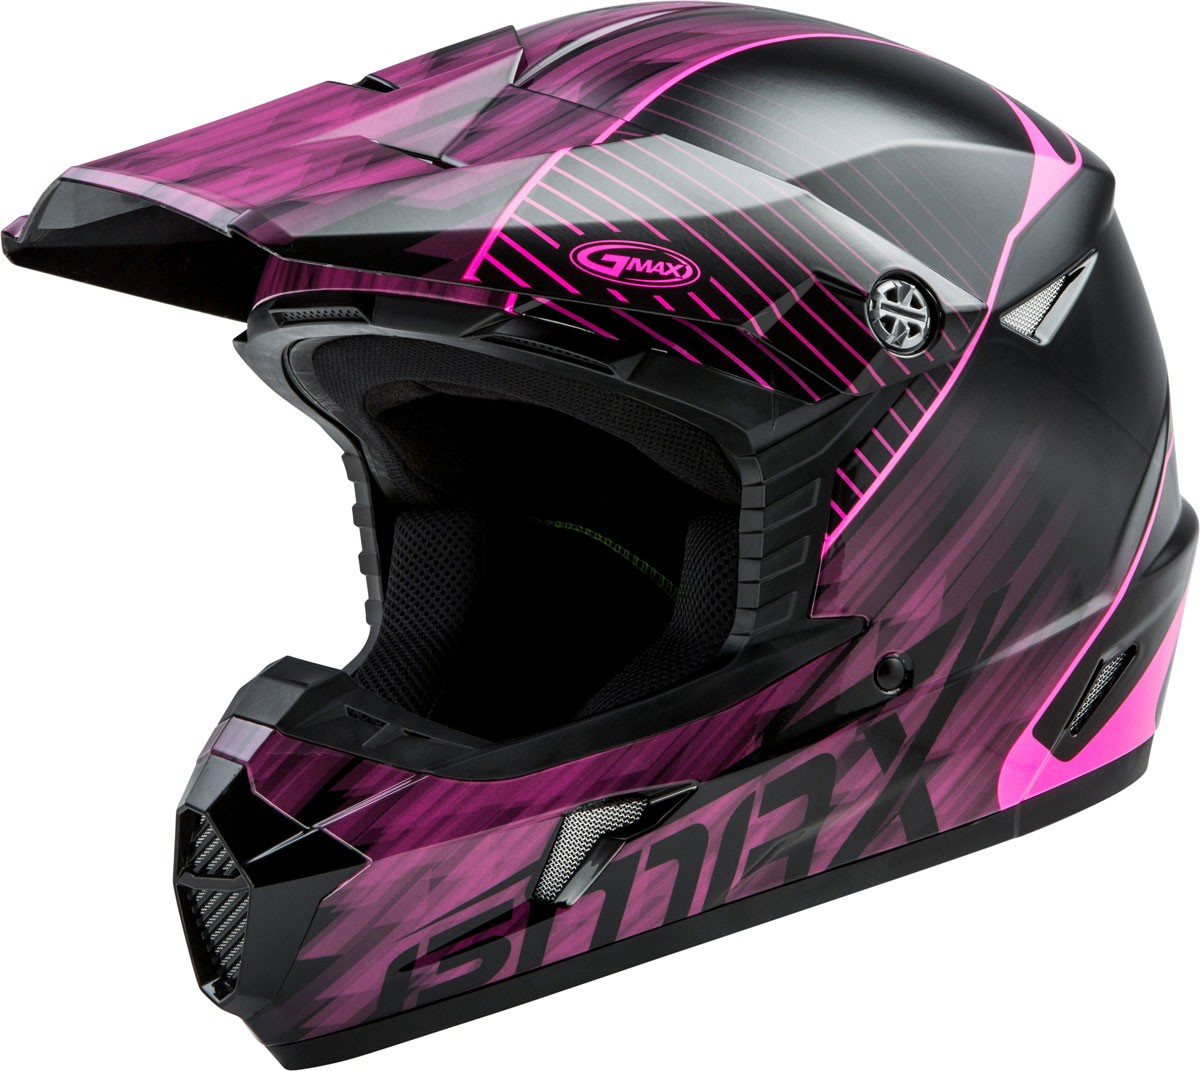 GMAX MX-46Y COLFAX Kids MX/Motocross/Off-Road Motorcycle Helmet (Gloss Black/Hi-Vis Pink)